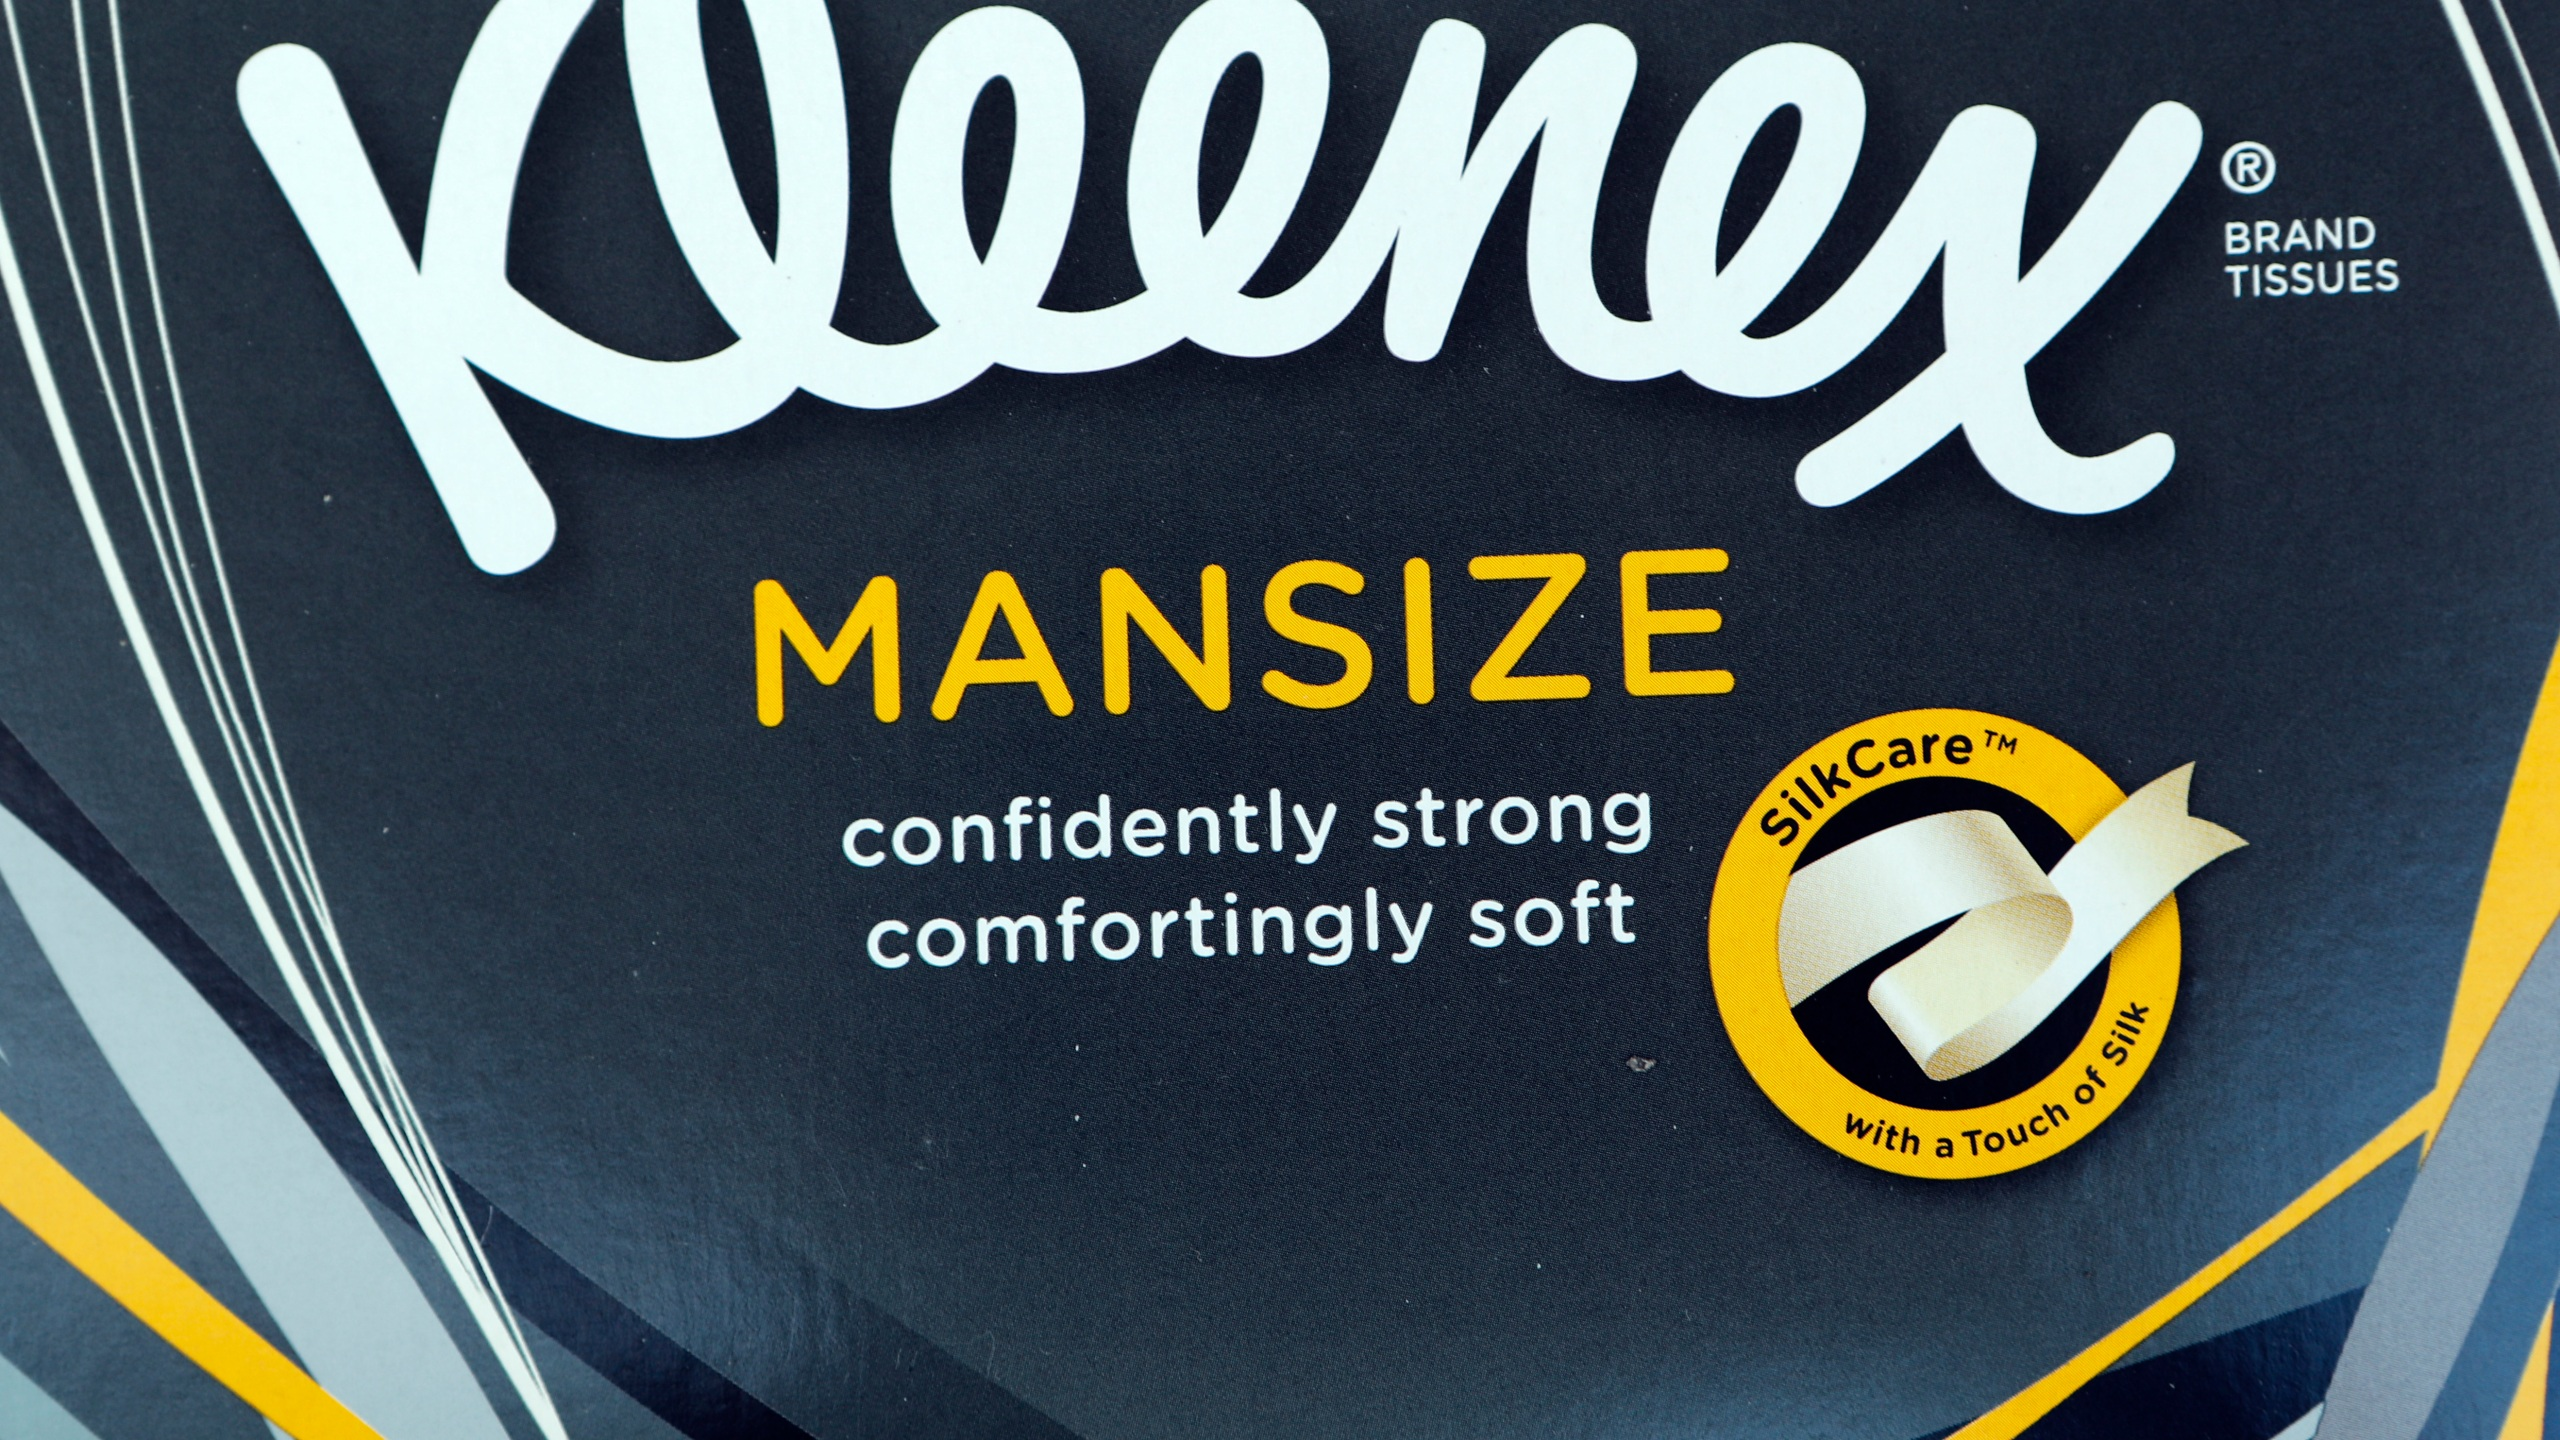 Britain_Kleenex_Gender_Complaints_09241-159532.jpg55770902